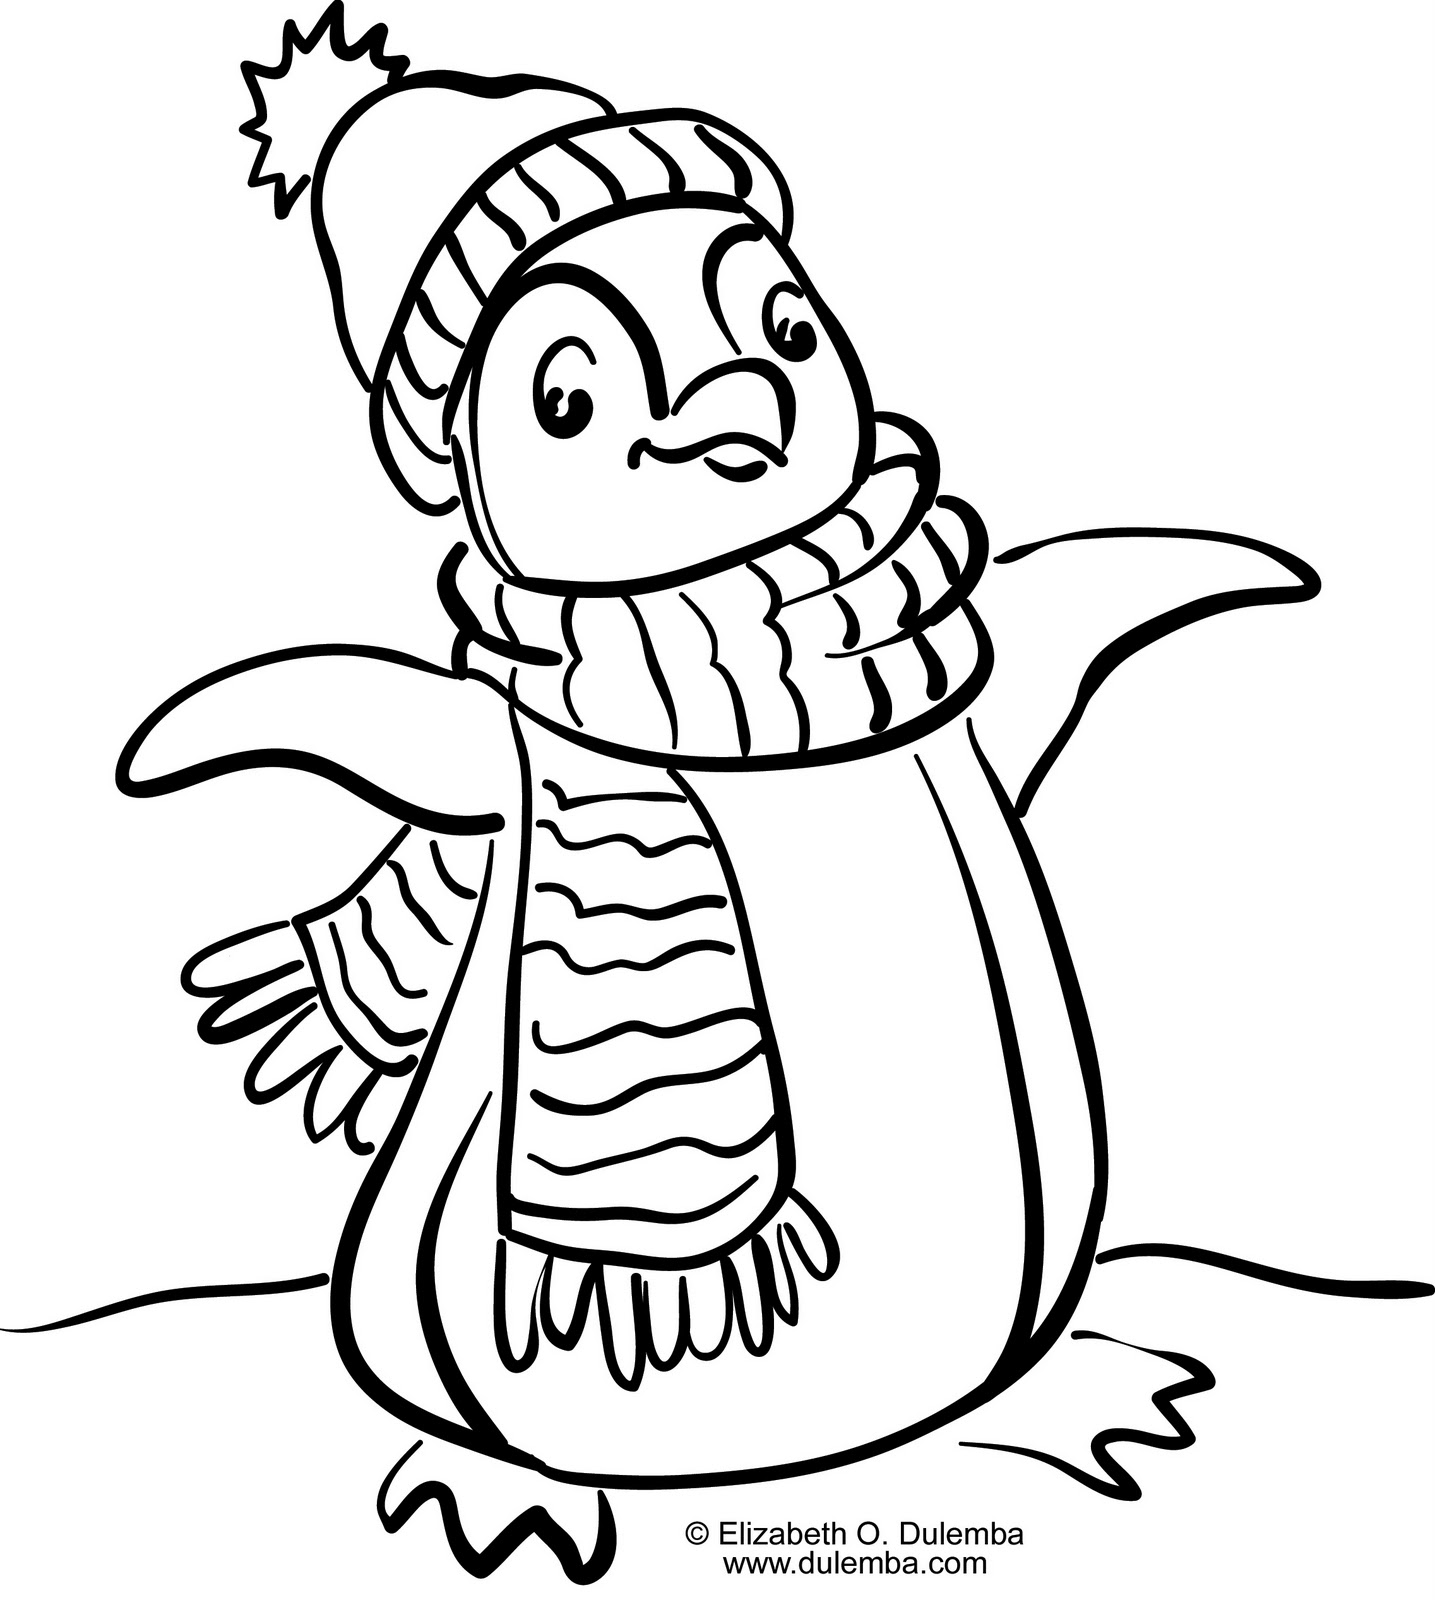 Coloring pages calvin and hobbes - picture 4 | 1600x1435